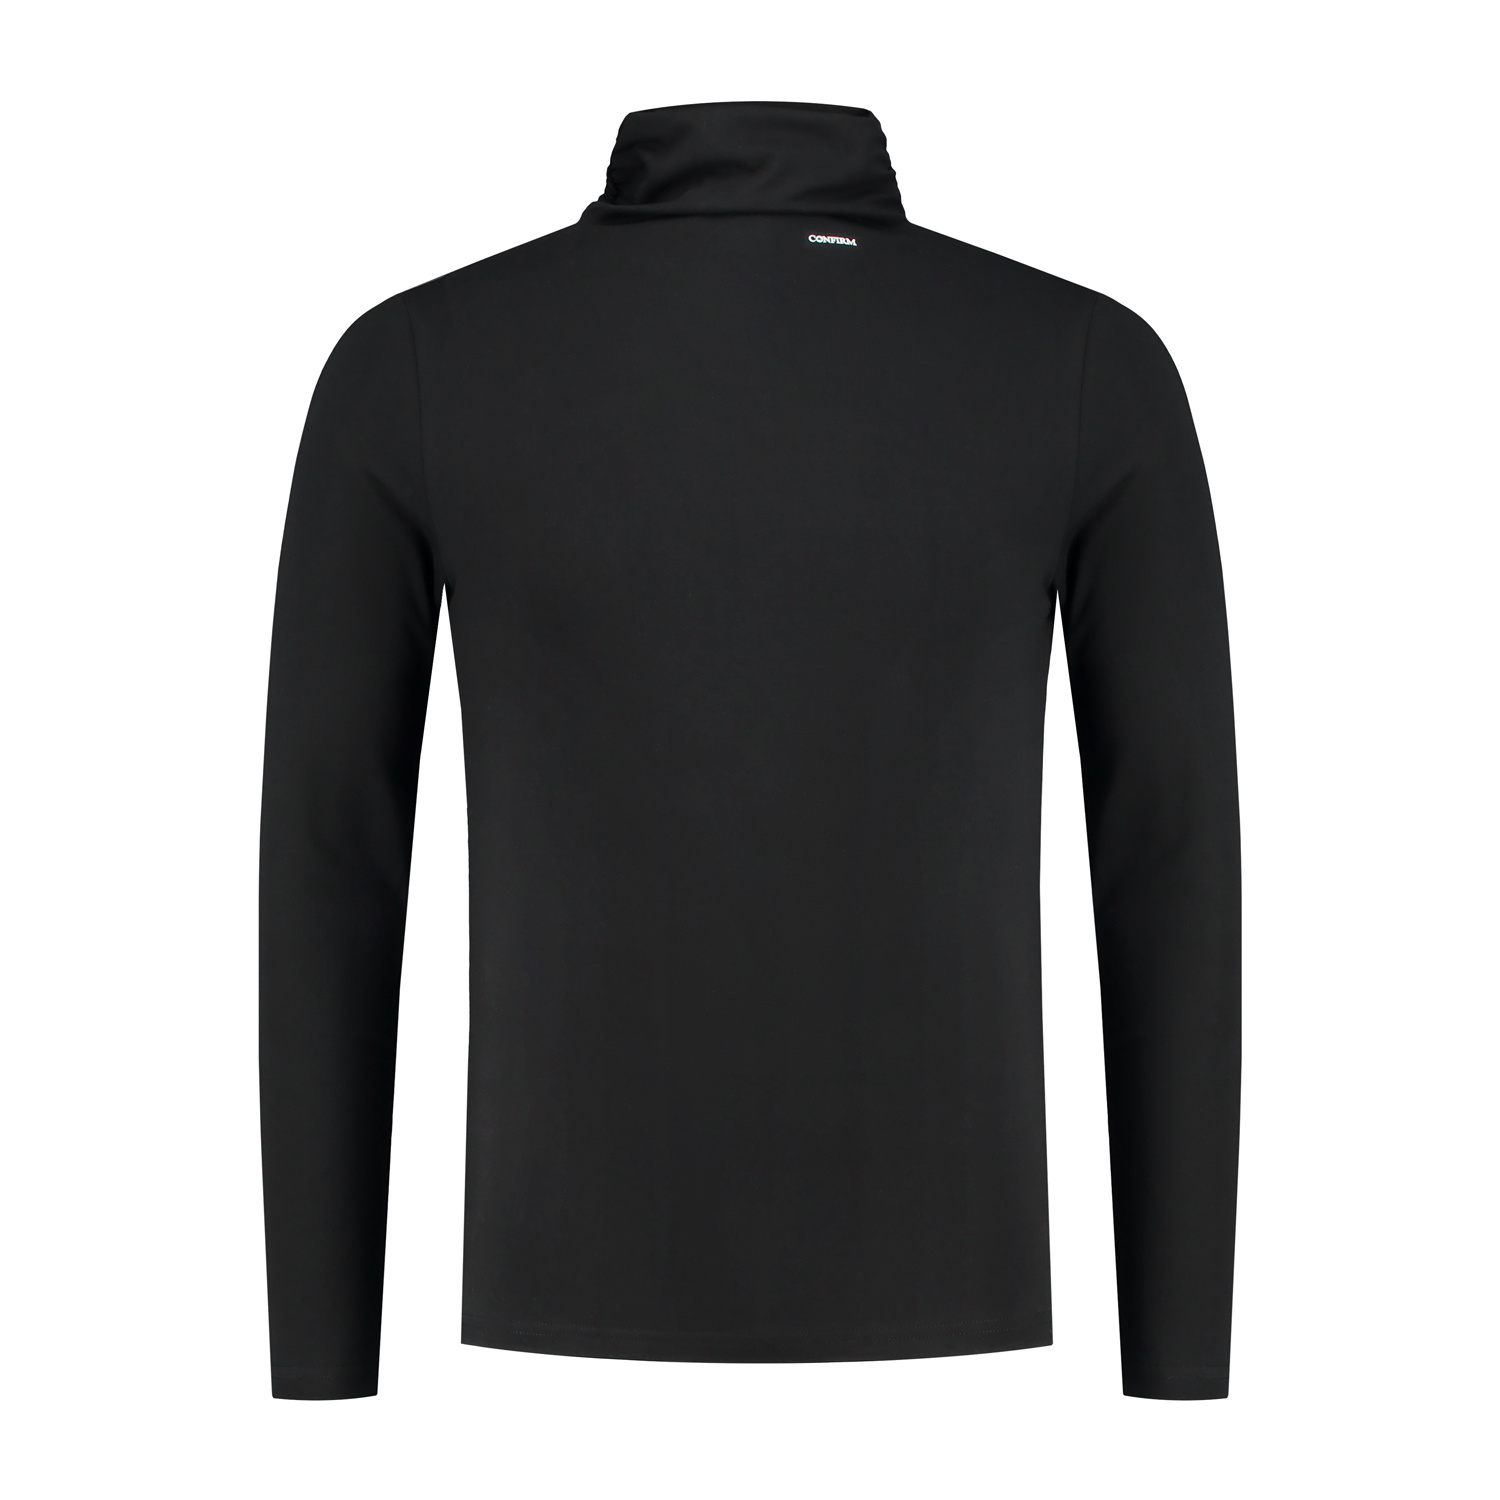 Confirm | Basic Turtleneck - Zwart-1